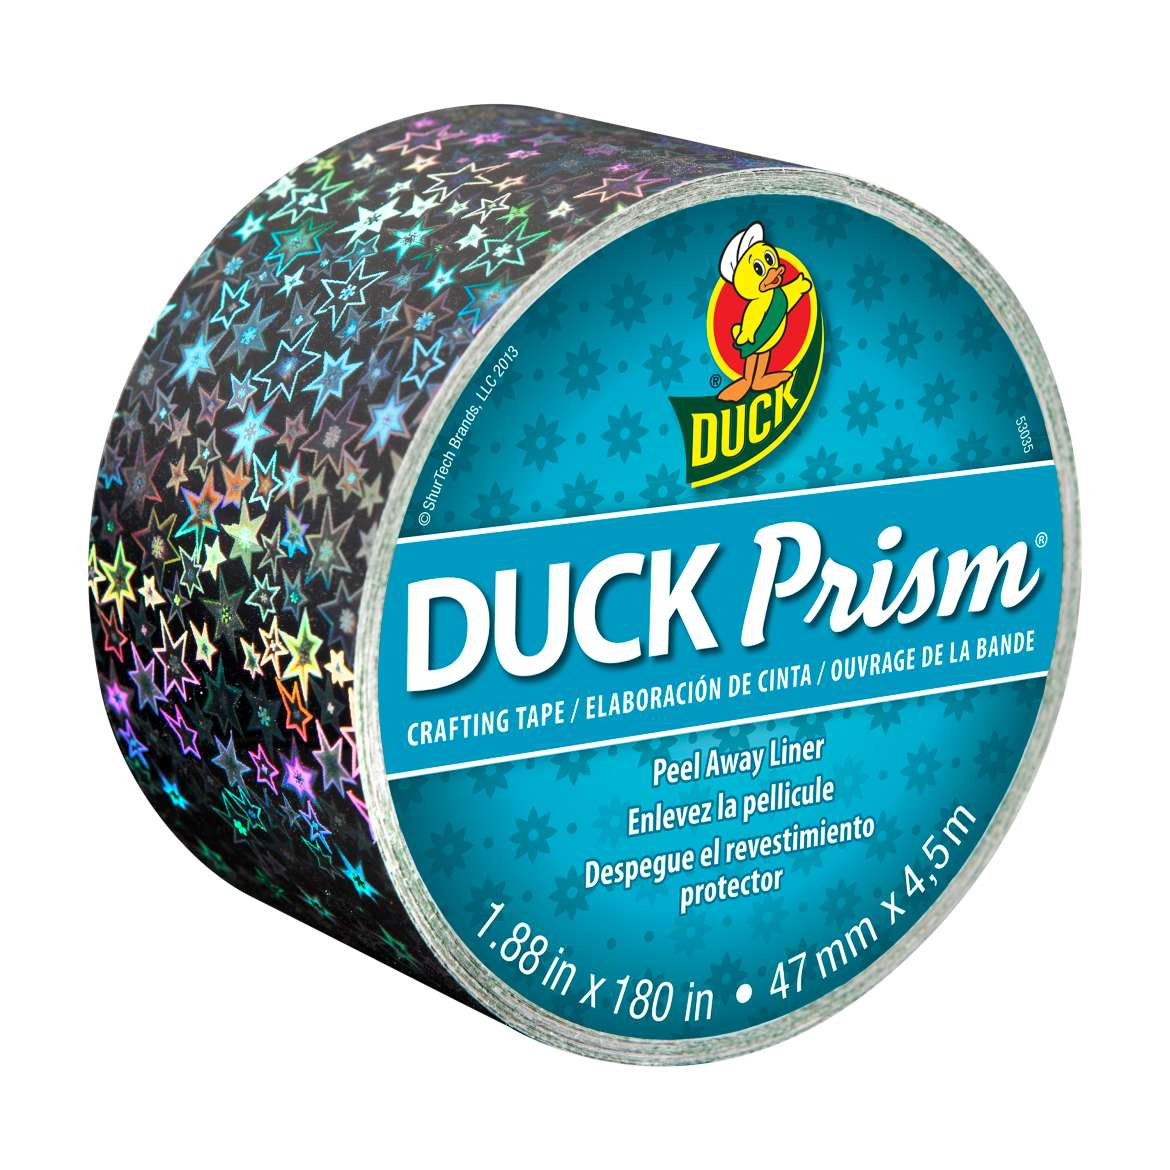 Duck Prism® Crafting Tape - Stars, 1.88 in. x 5 yd. Image